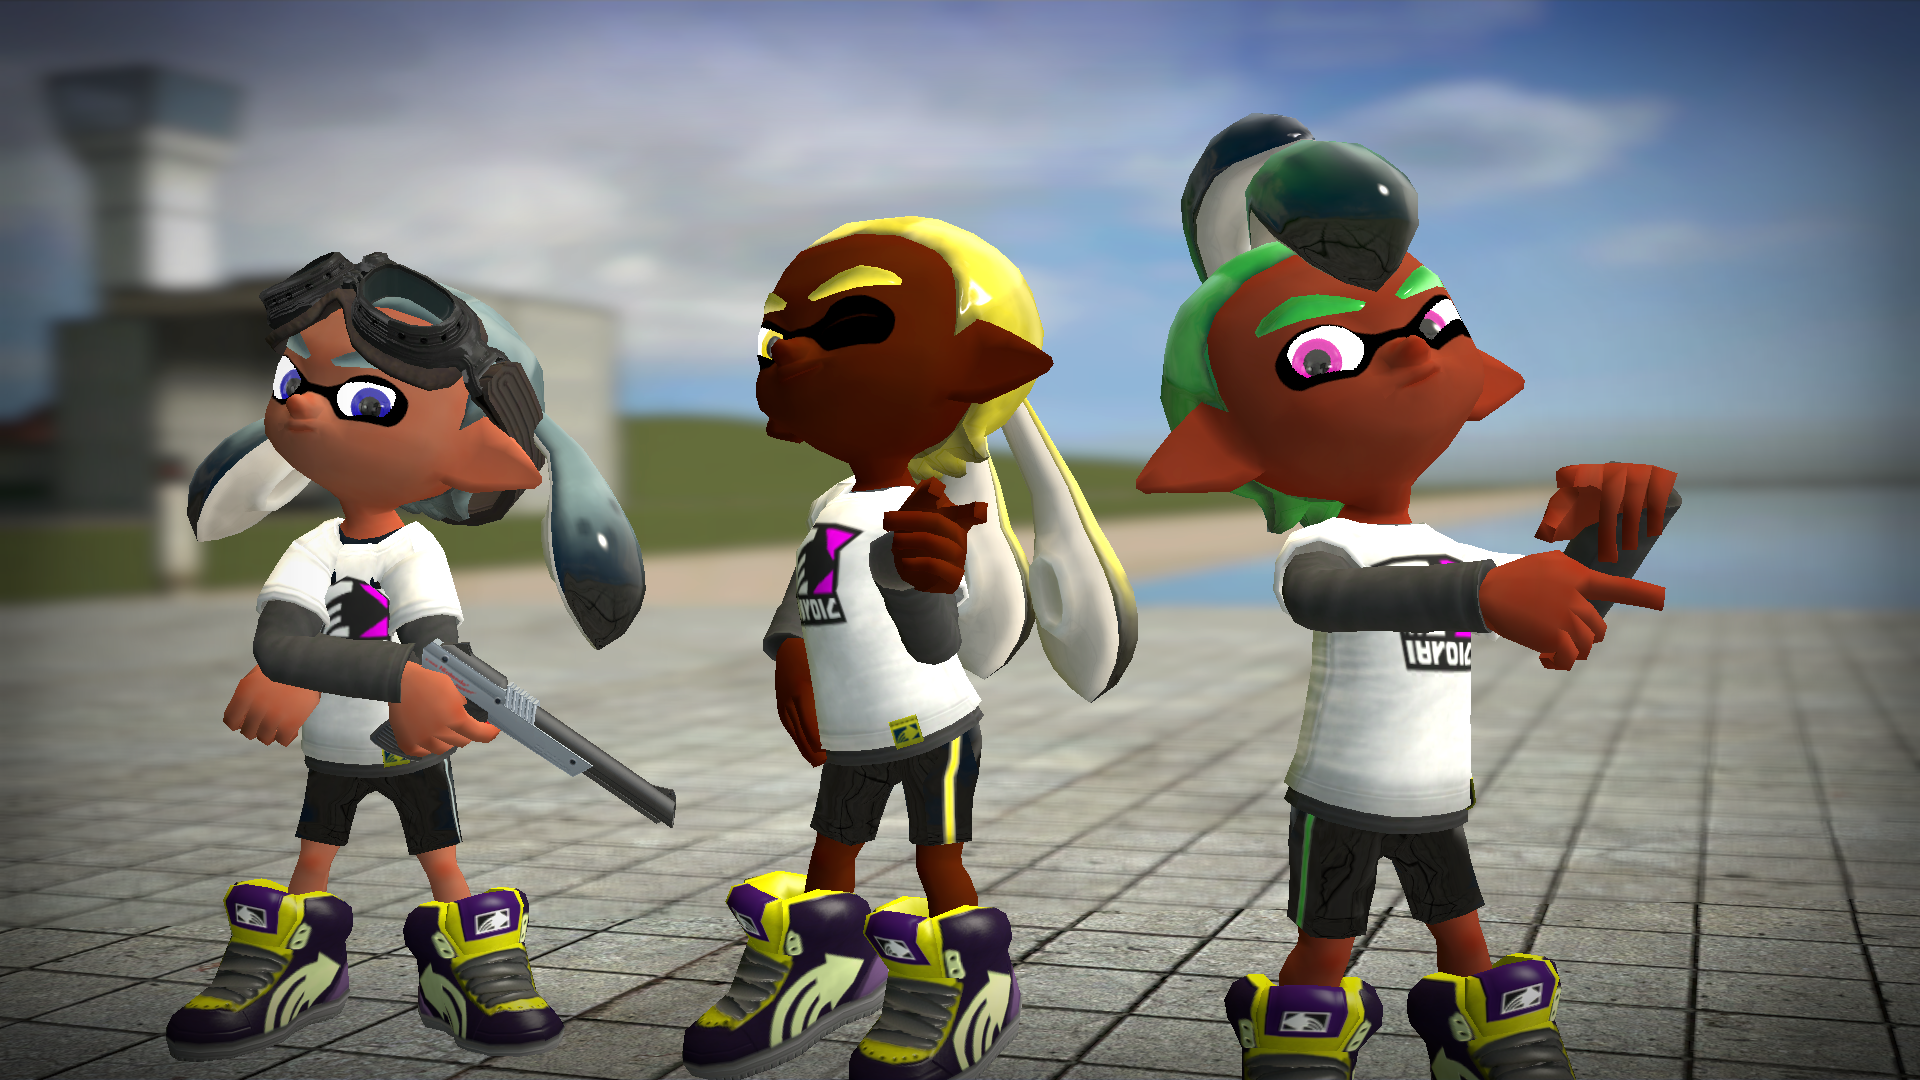 New Hairstyles For Inkling Boys Splatoon Know Your Meme